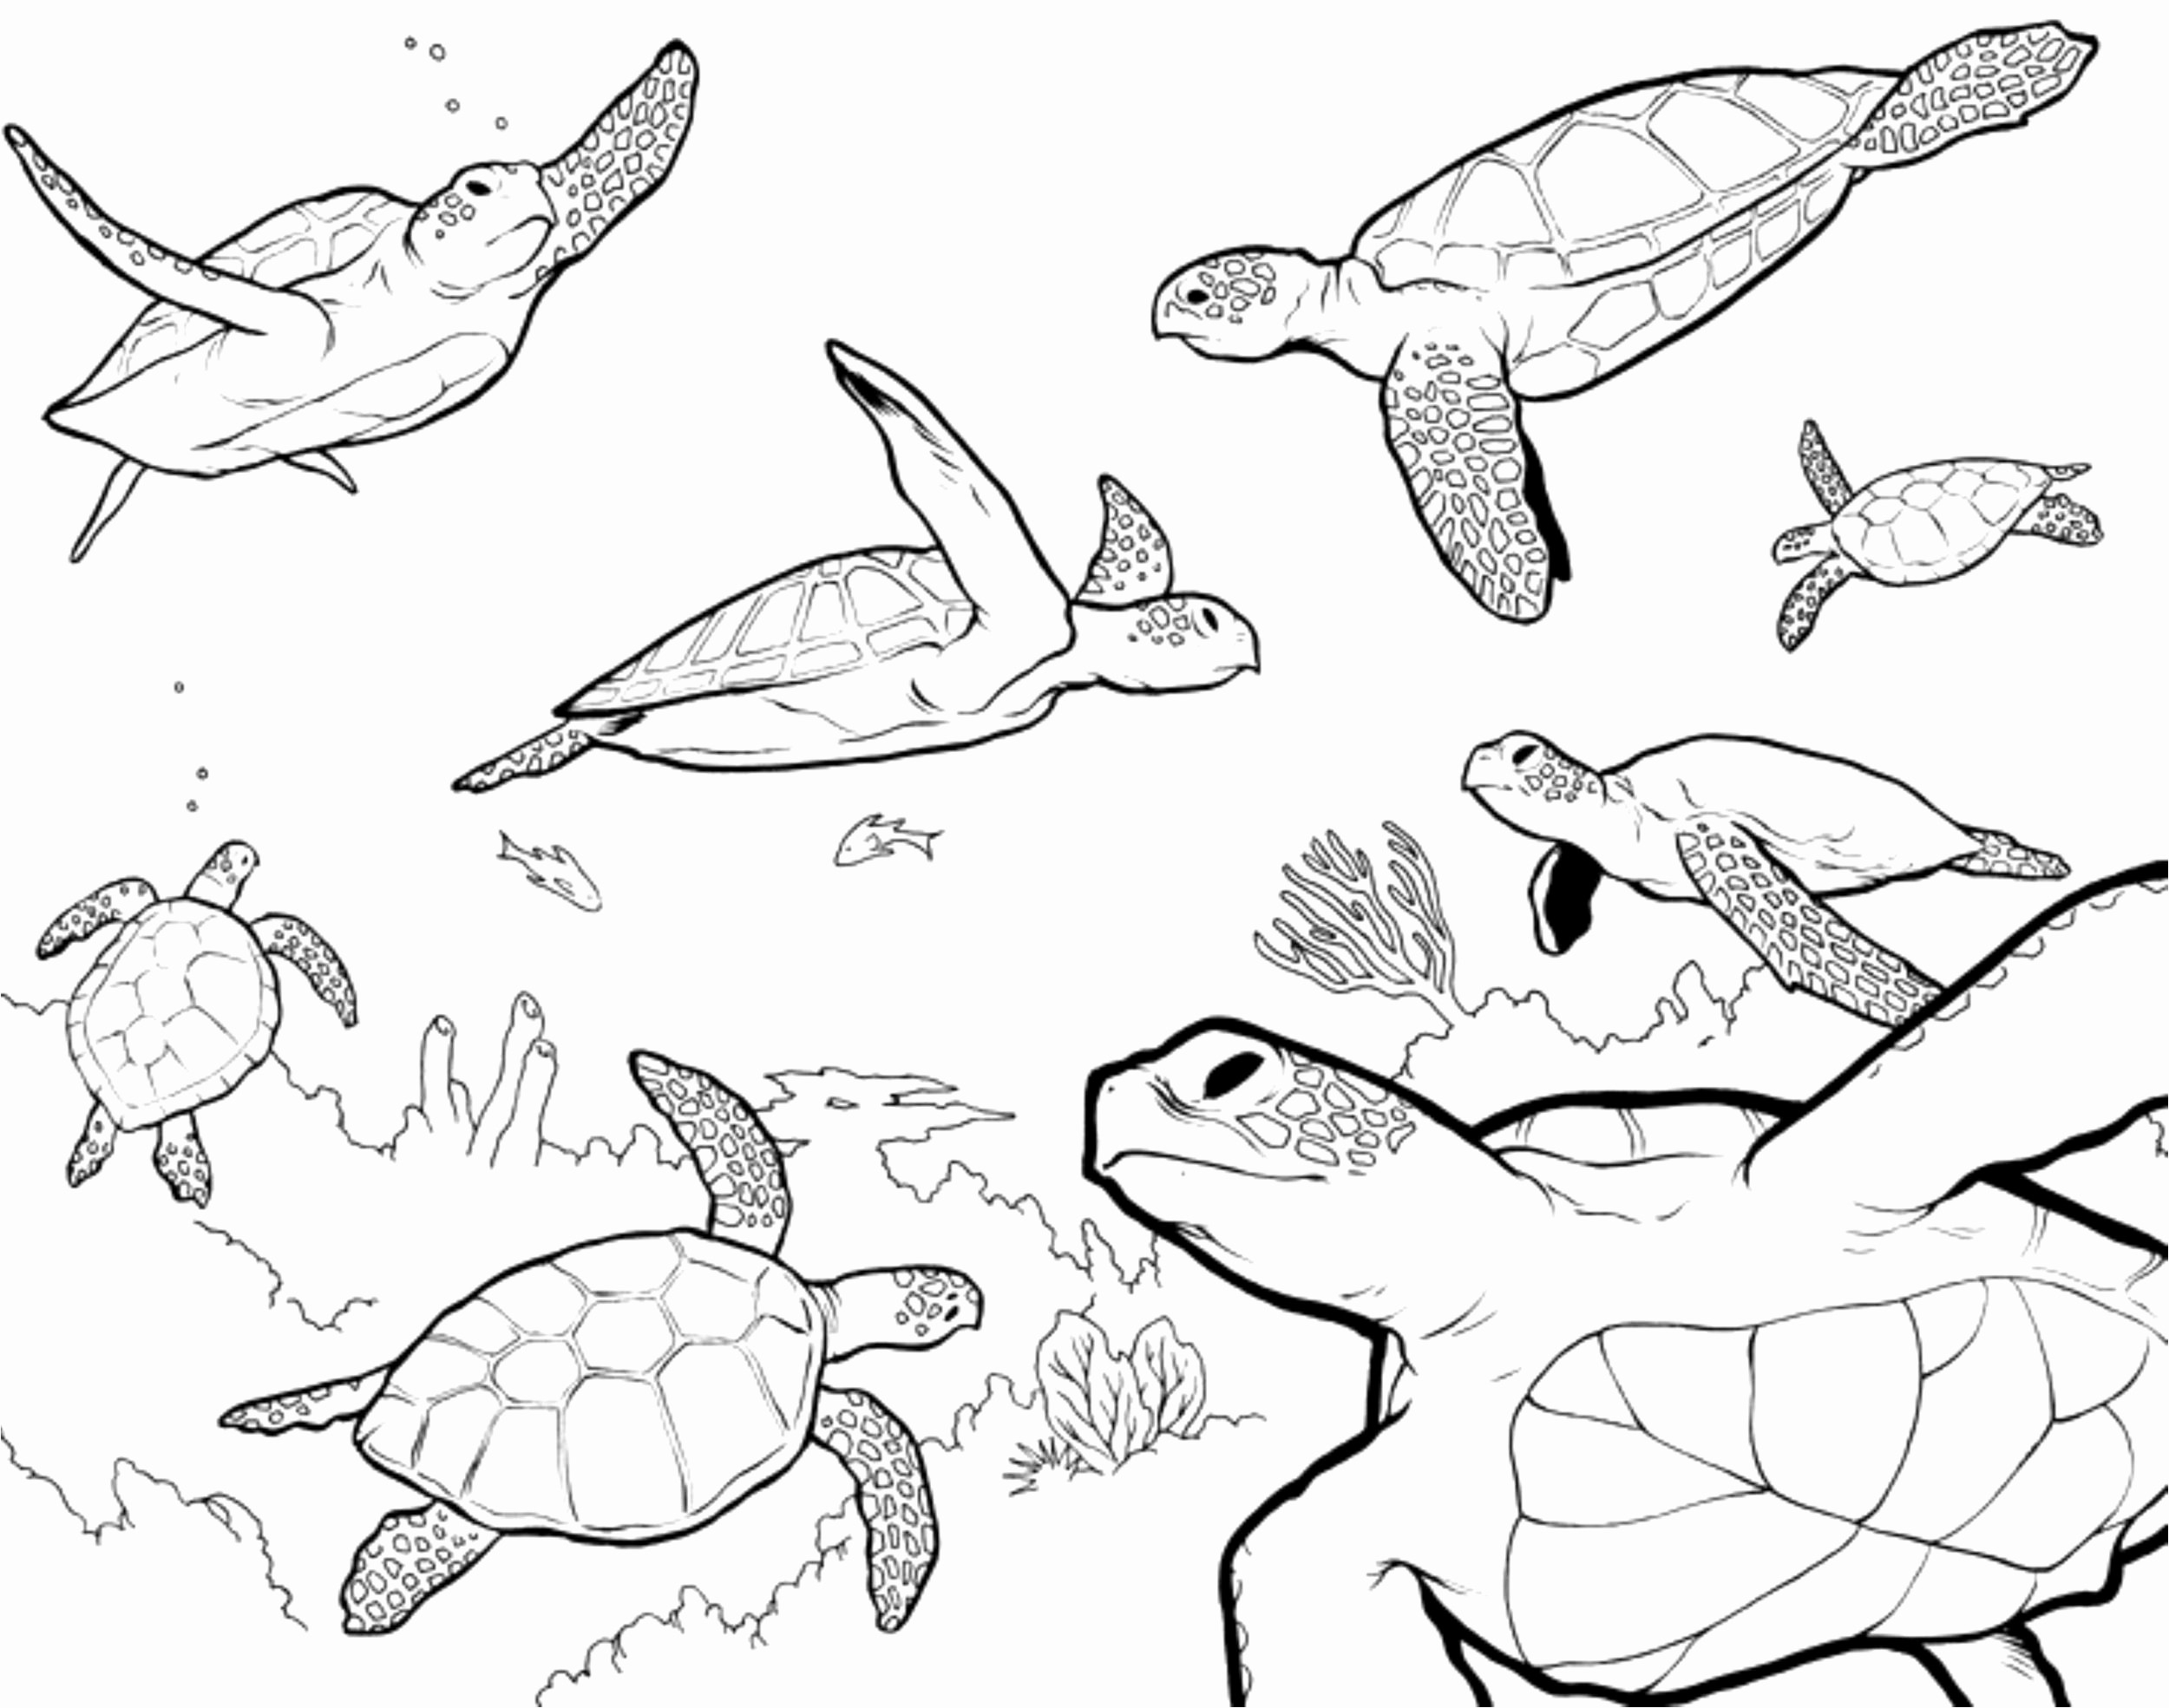 23 Complicated Animal Coloring Pages Collection - Coloring Sheets